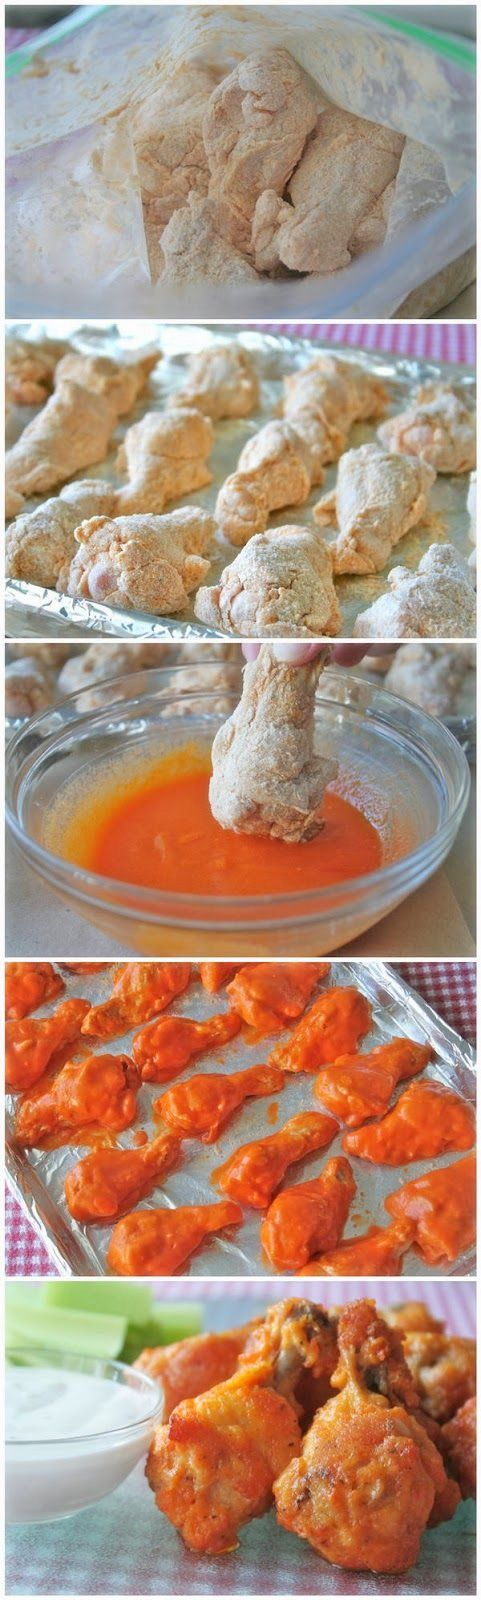 Baked Chicken Wings - sub pork rinds, parmesean or almond flour for flour.